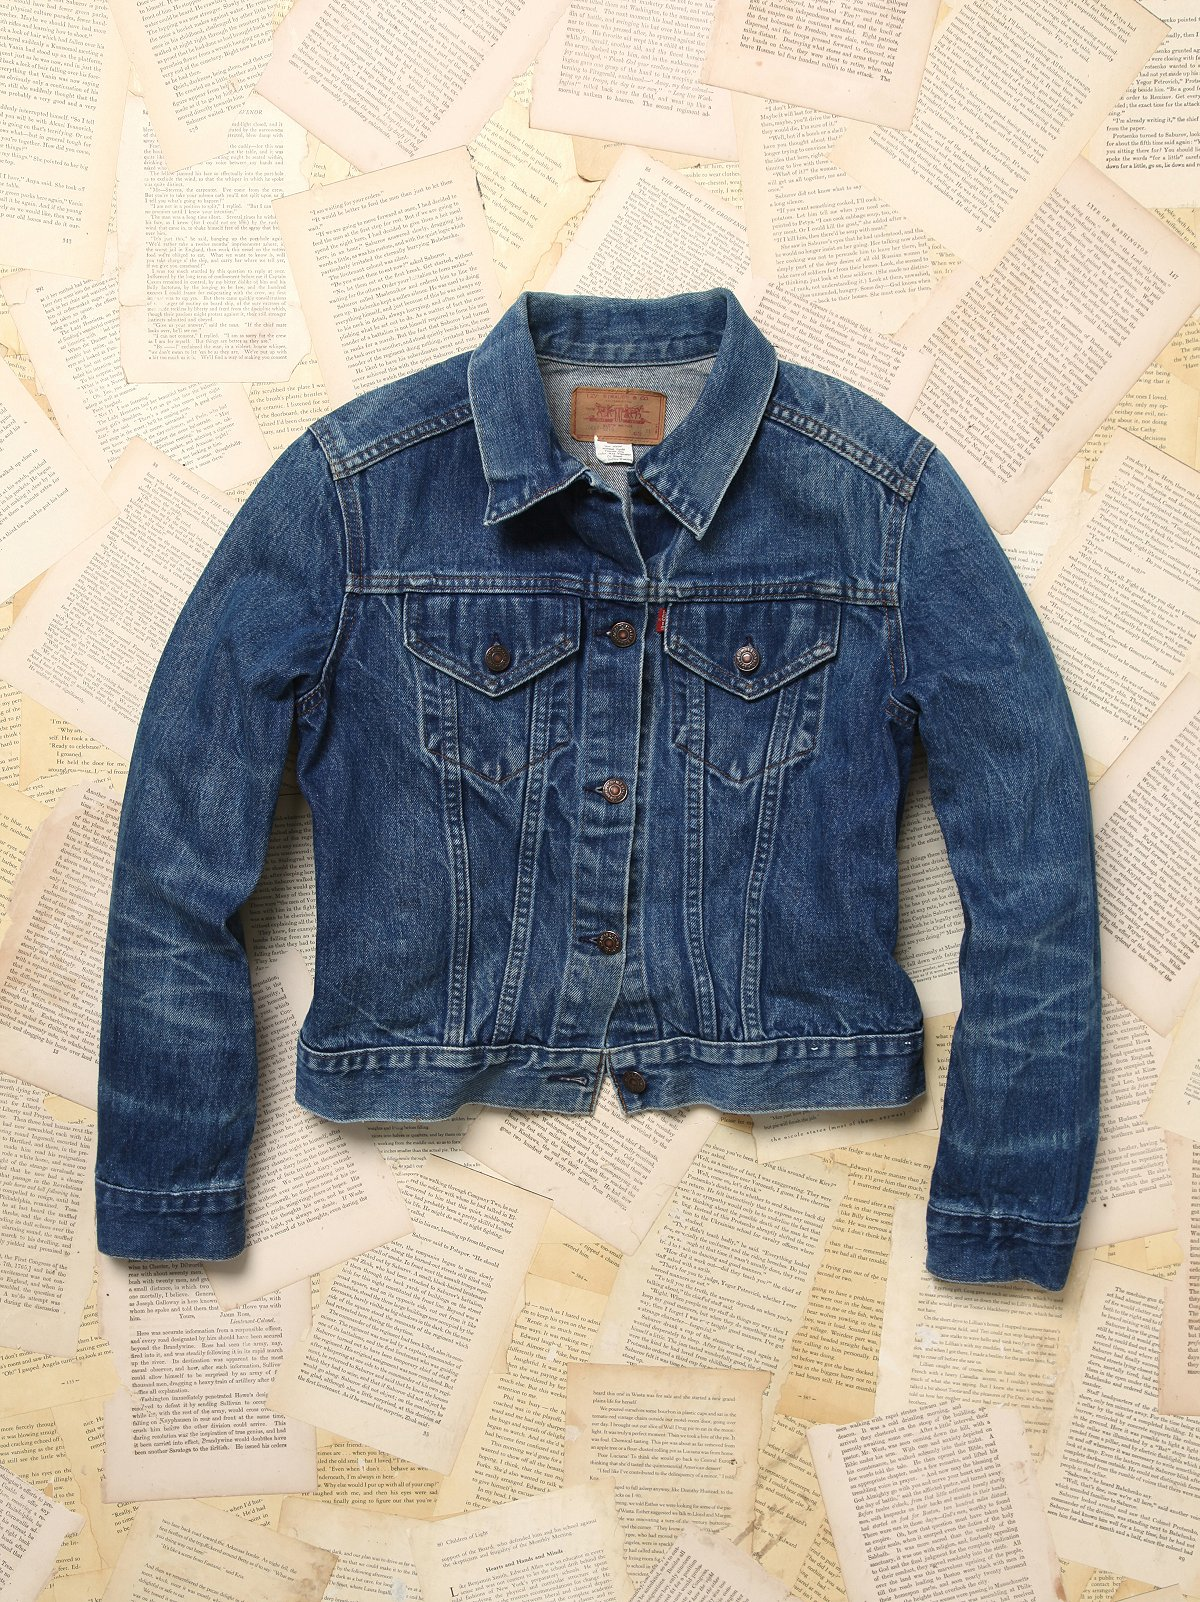 Vintage Levi's Shruken Denim Jacket